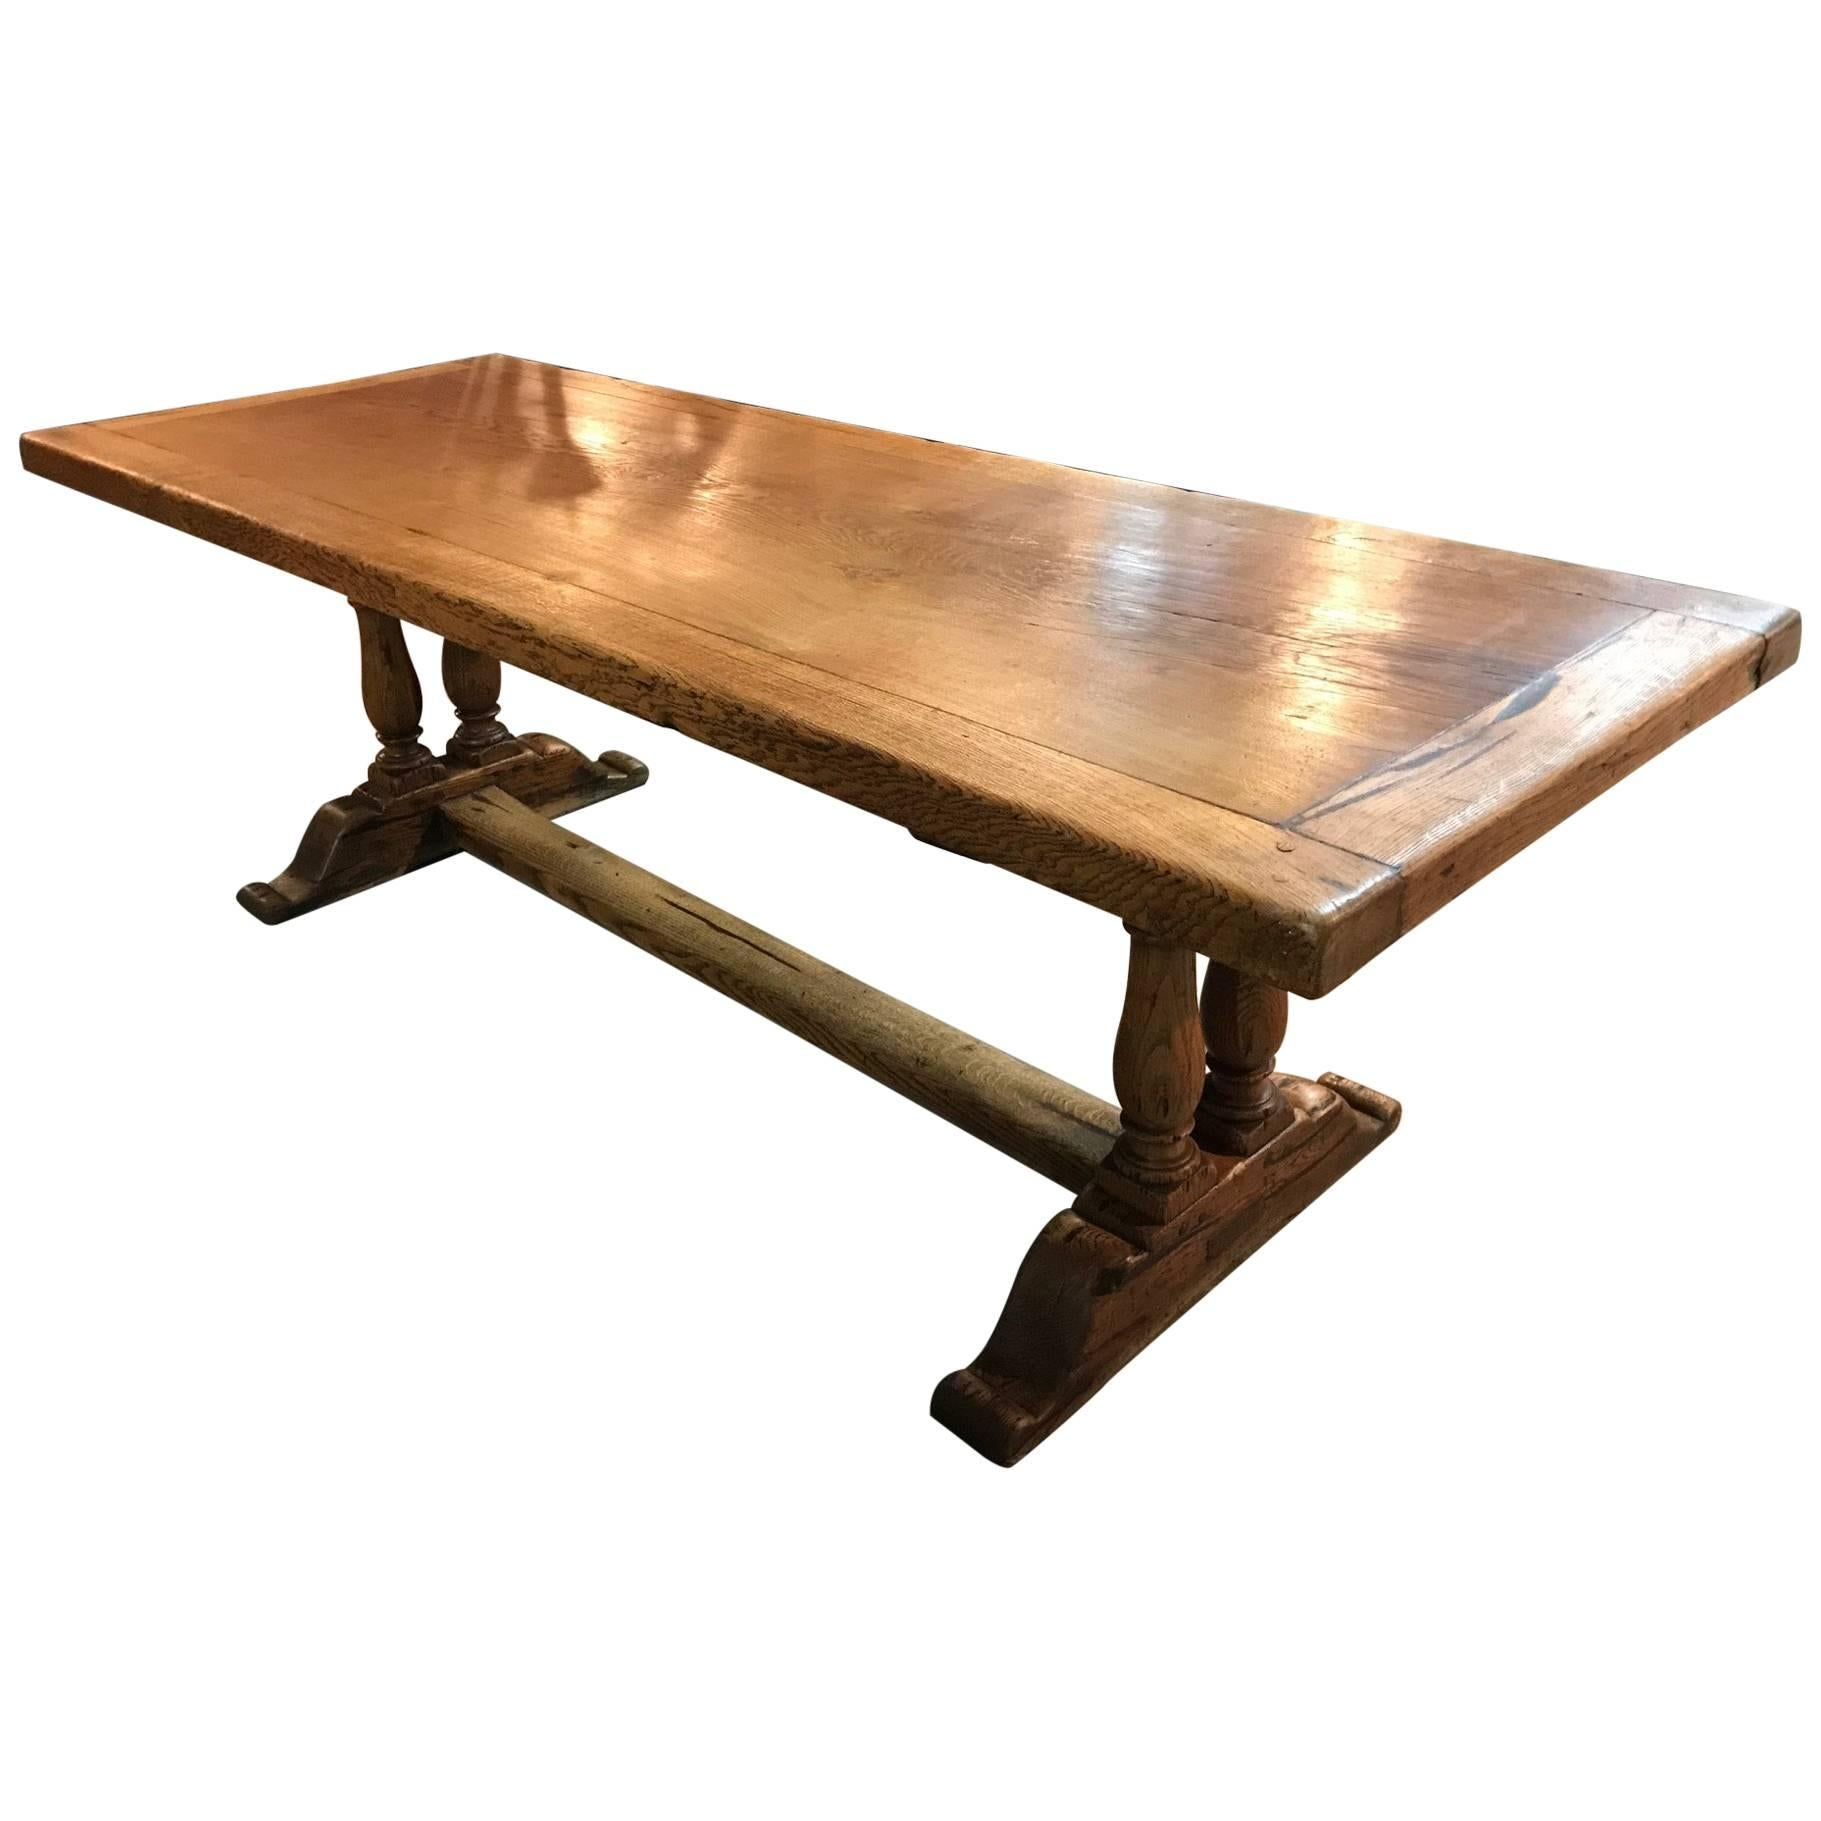 French Farm Table Or Trestle Table